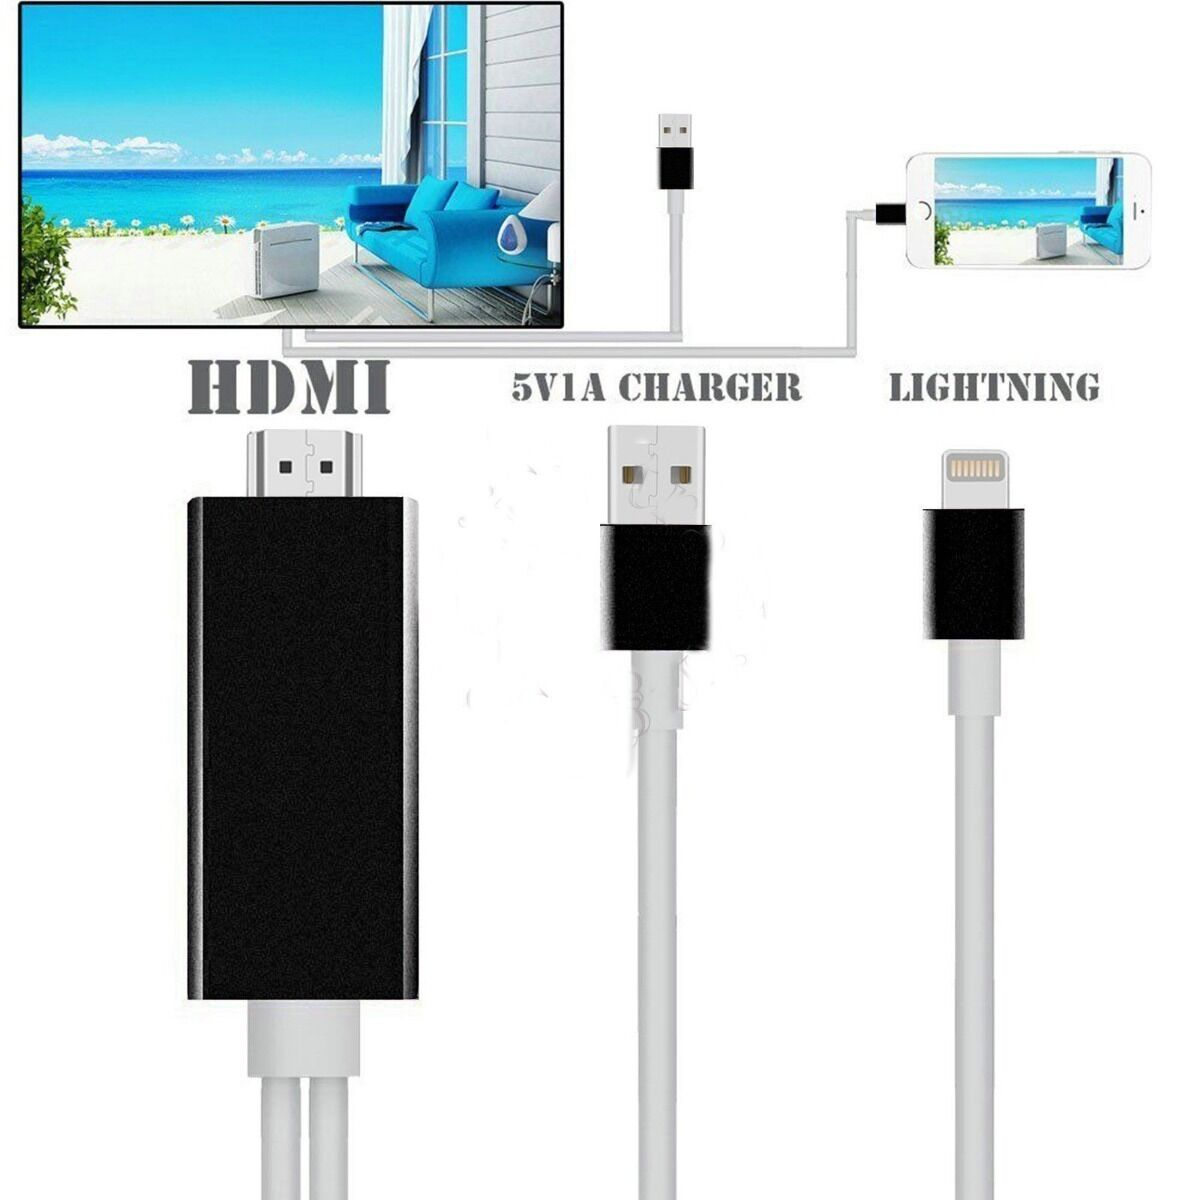 iphone 5 hdmi cable 2m lightning to av hdmi hdtv tv cable adapter for apple 14525